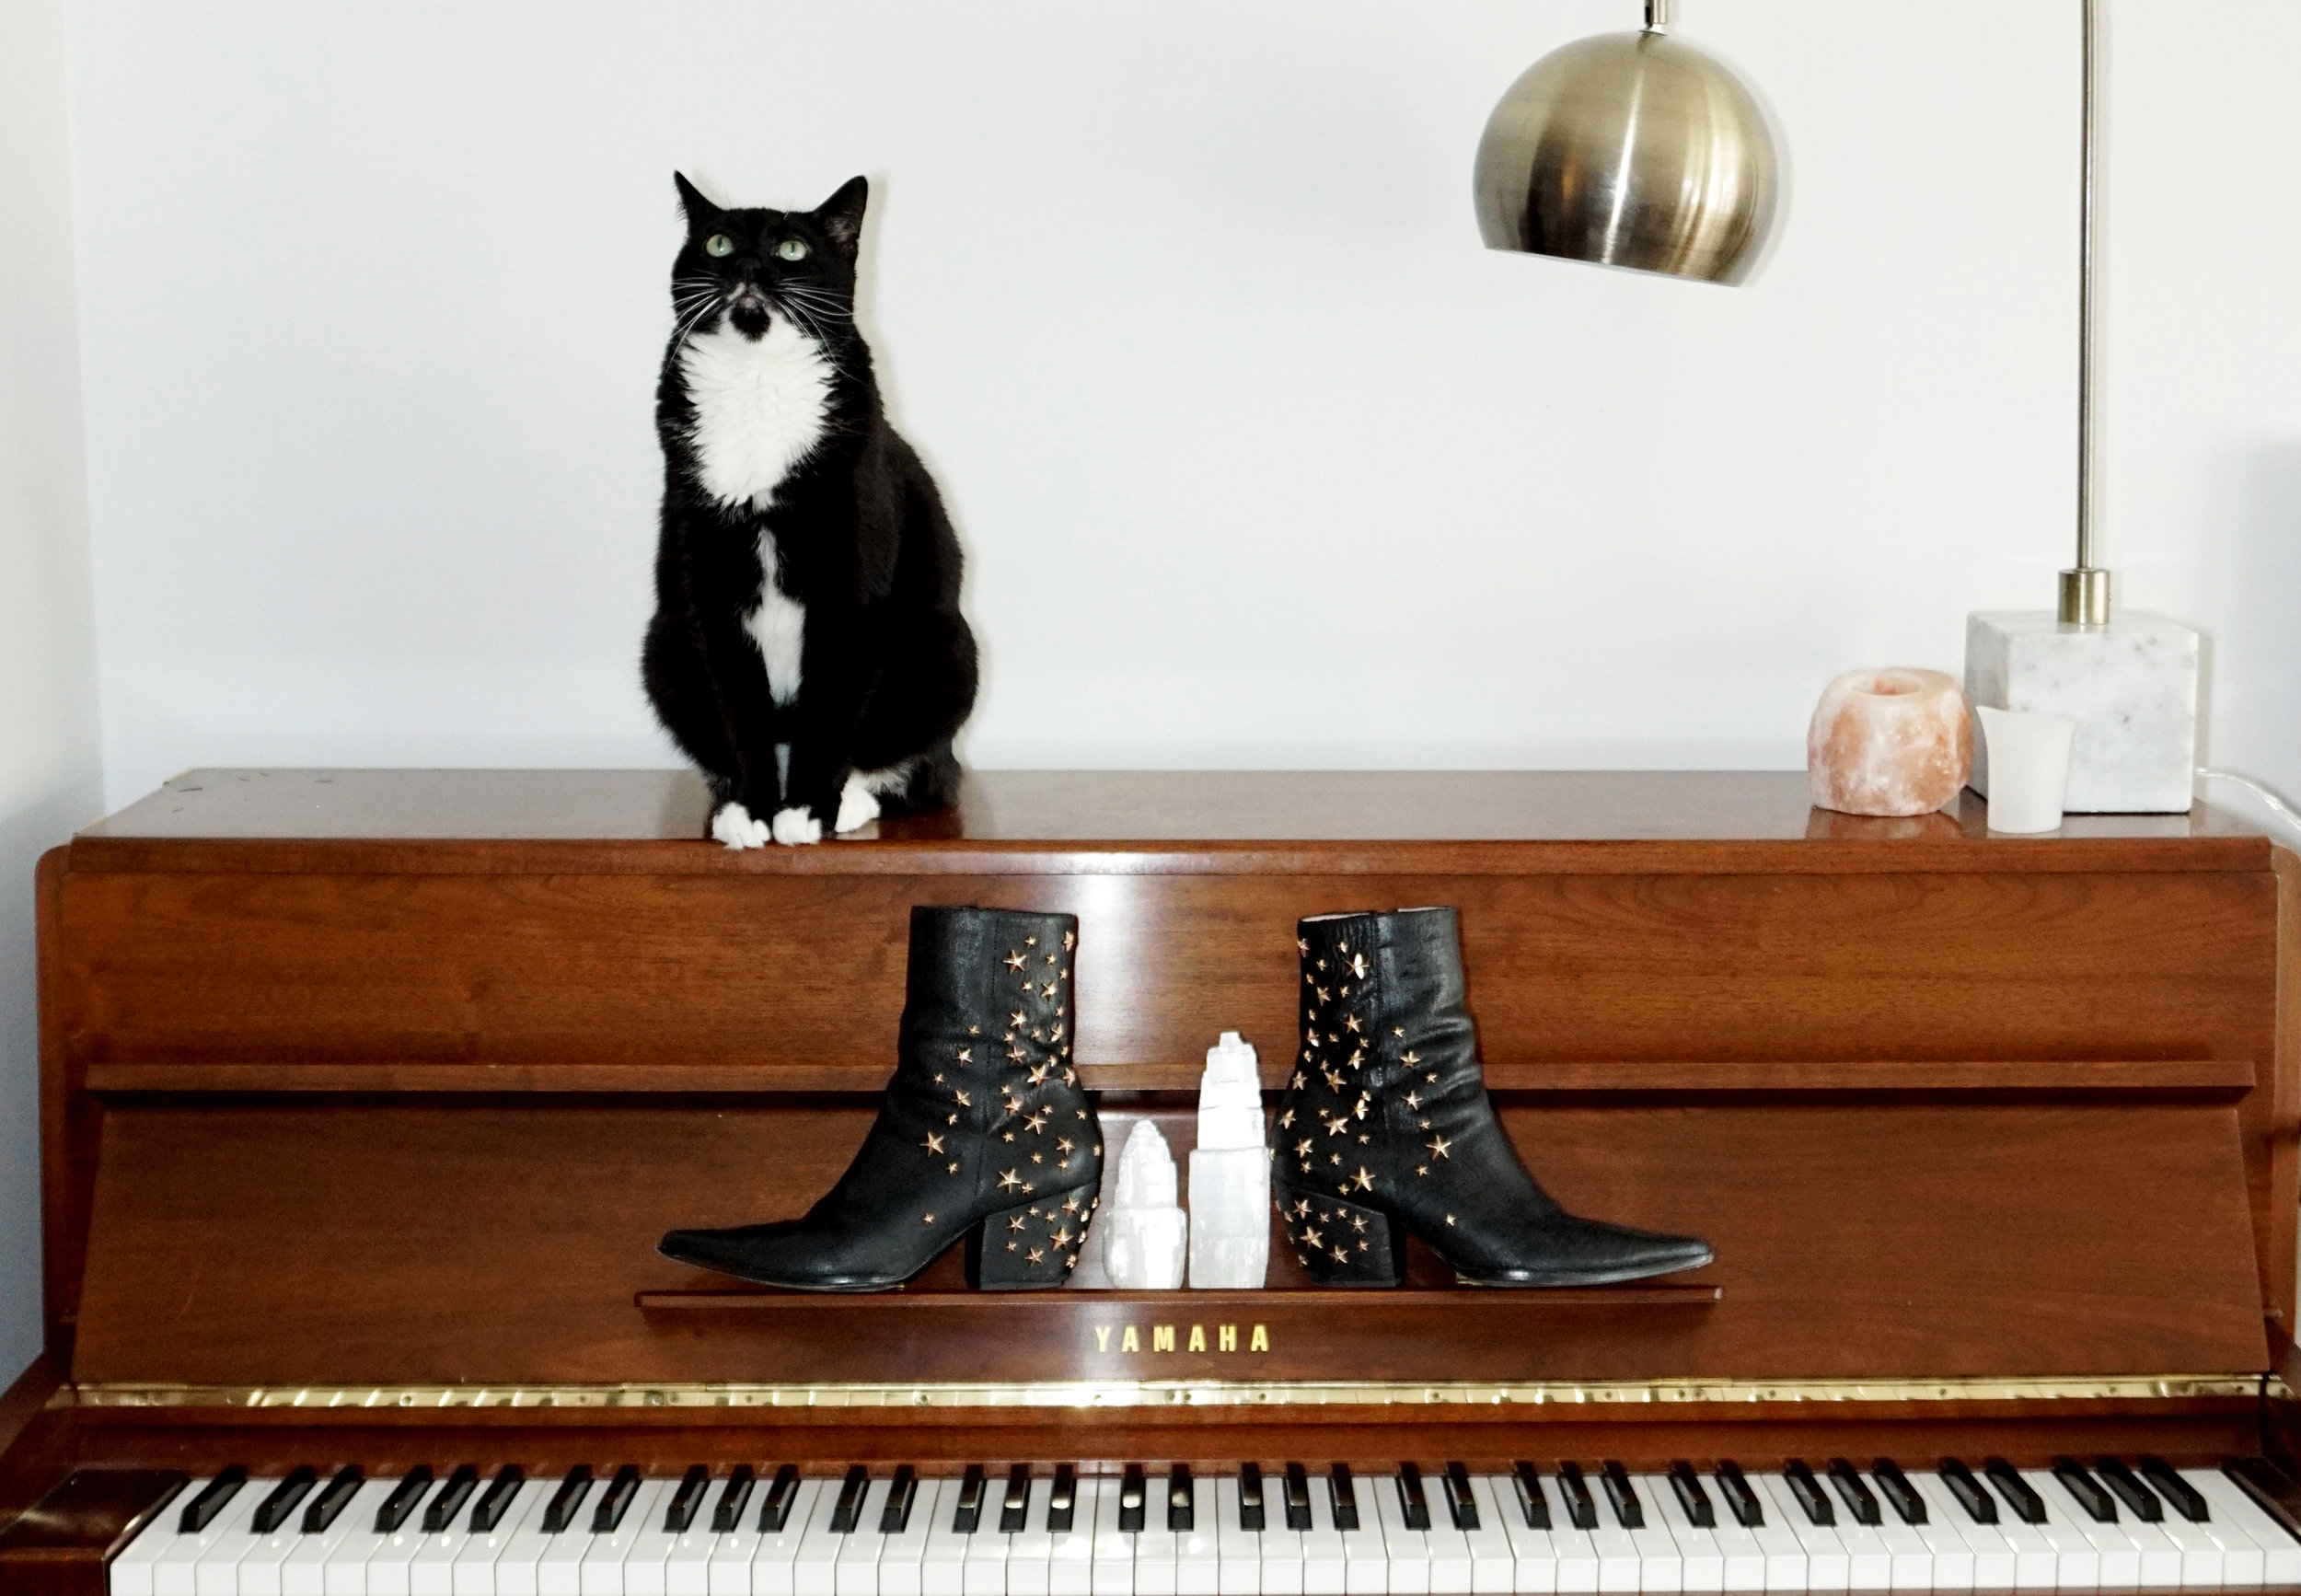 Even though I have an entire wall dedicated to shoes in the spare bedroom, I always have shoes scattered all around the house. Normally they're not kept on the piano but I couldn't resist for the sake of a good photo.